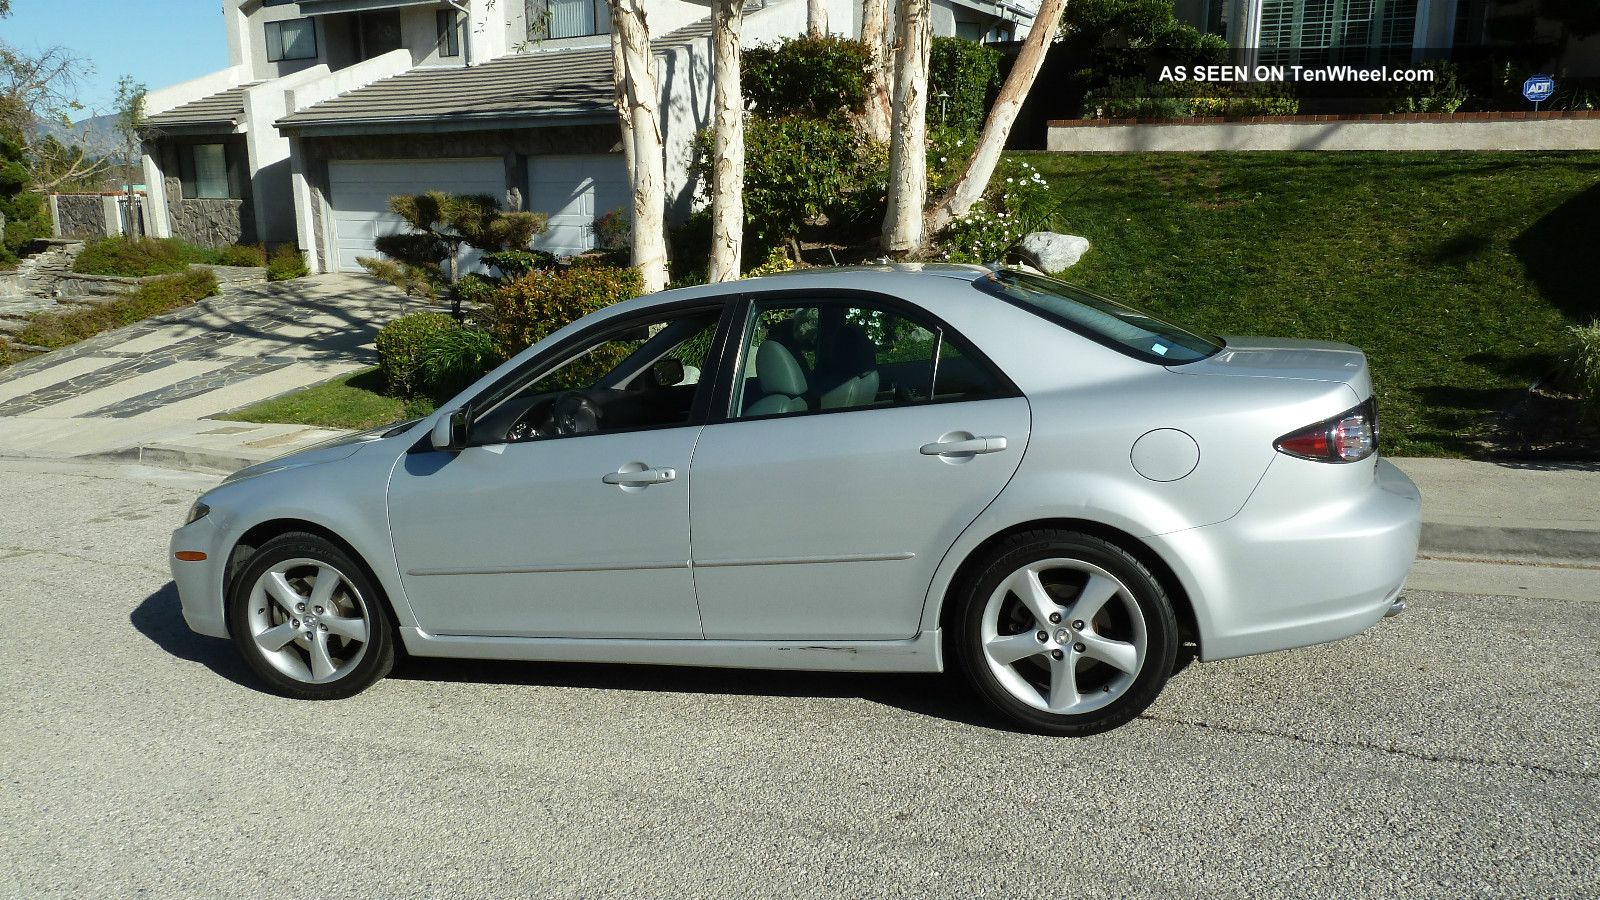 2007 mazda 6 grand touring silver gray moon roof alloy wheels 6 disc. Black Bedroom Furniture Sets. Home Design Ideas